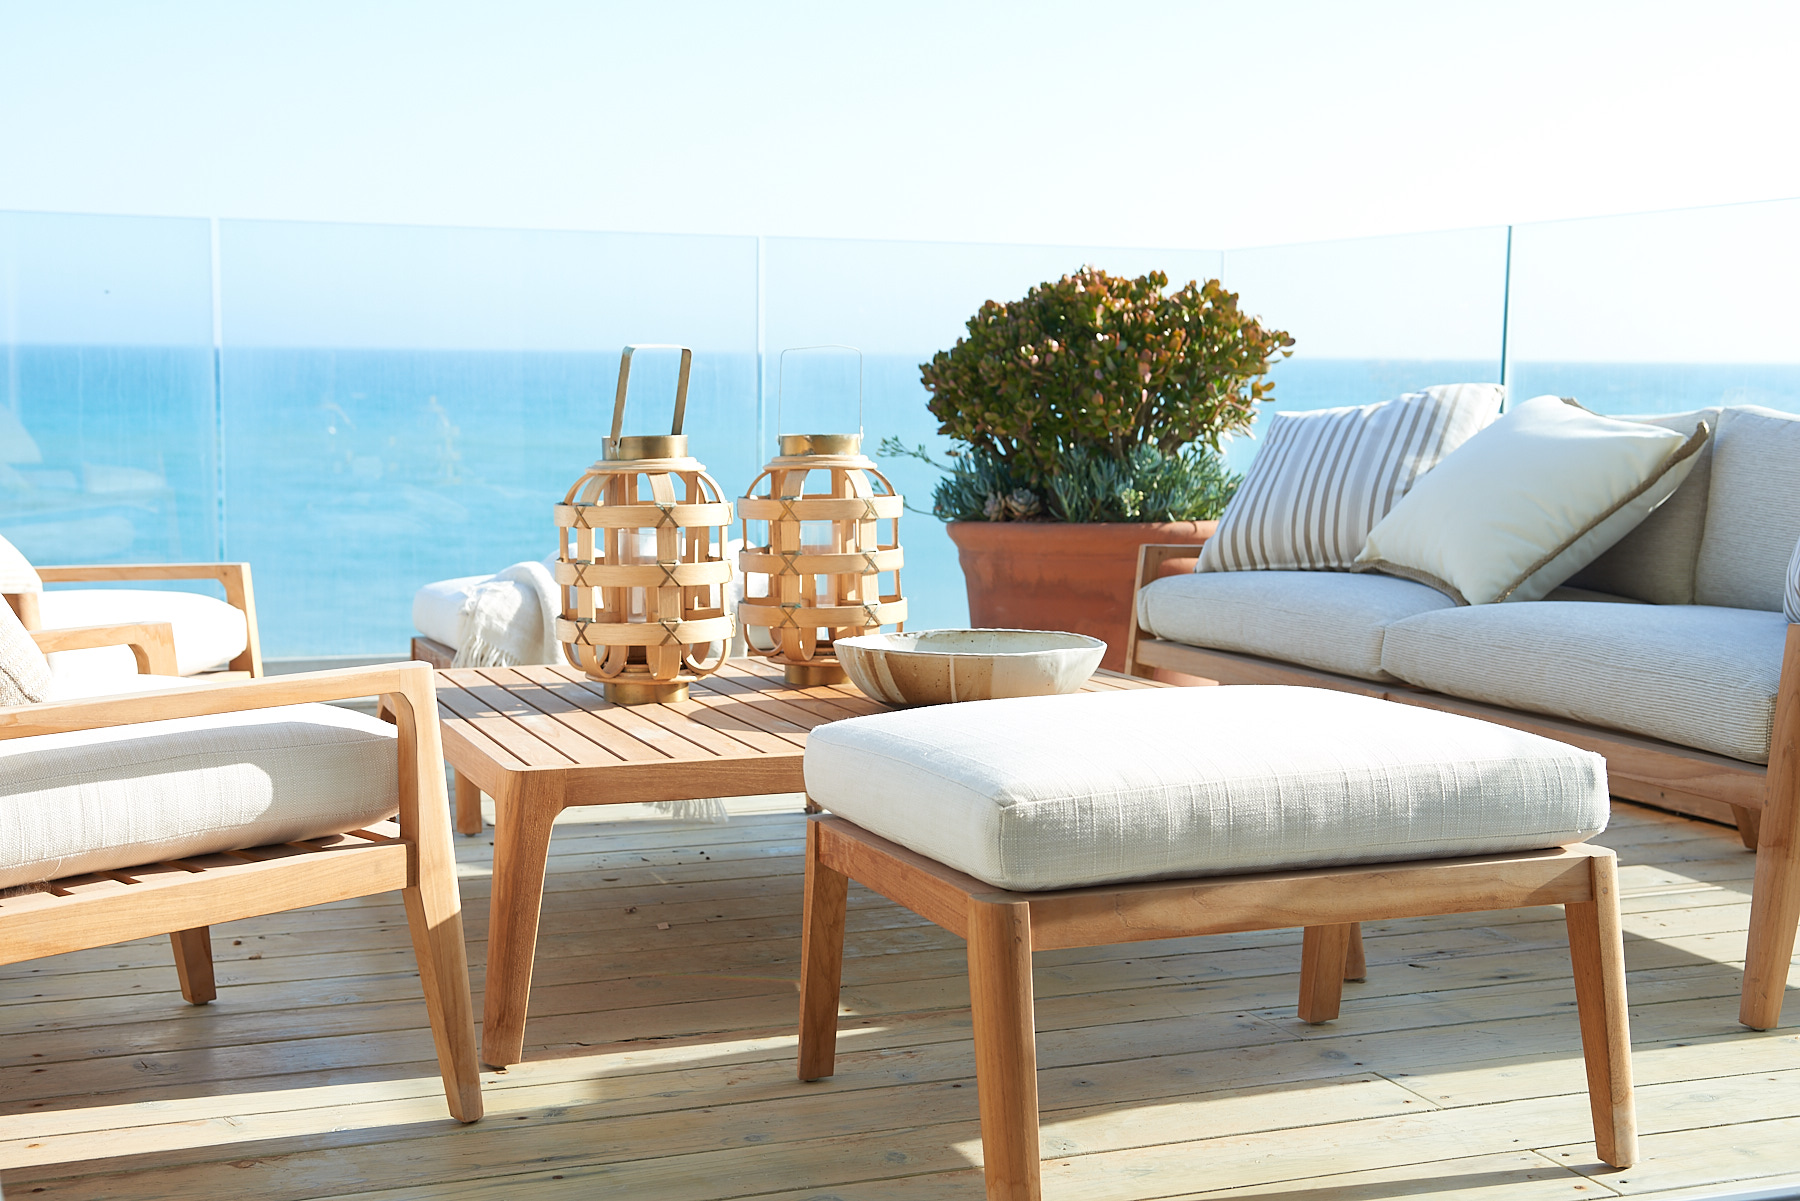 Outdoor patio set with cream-colored cushions